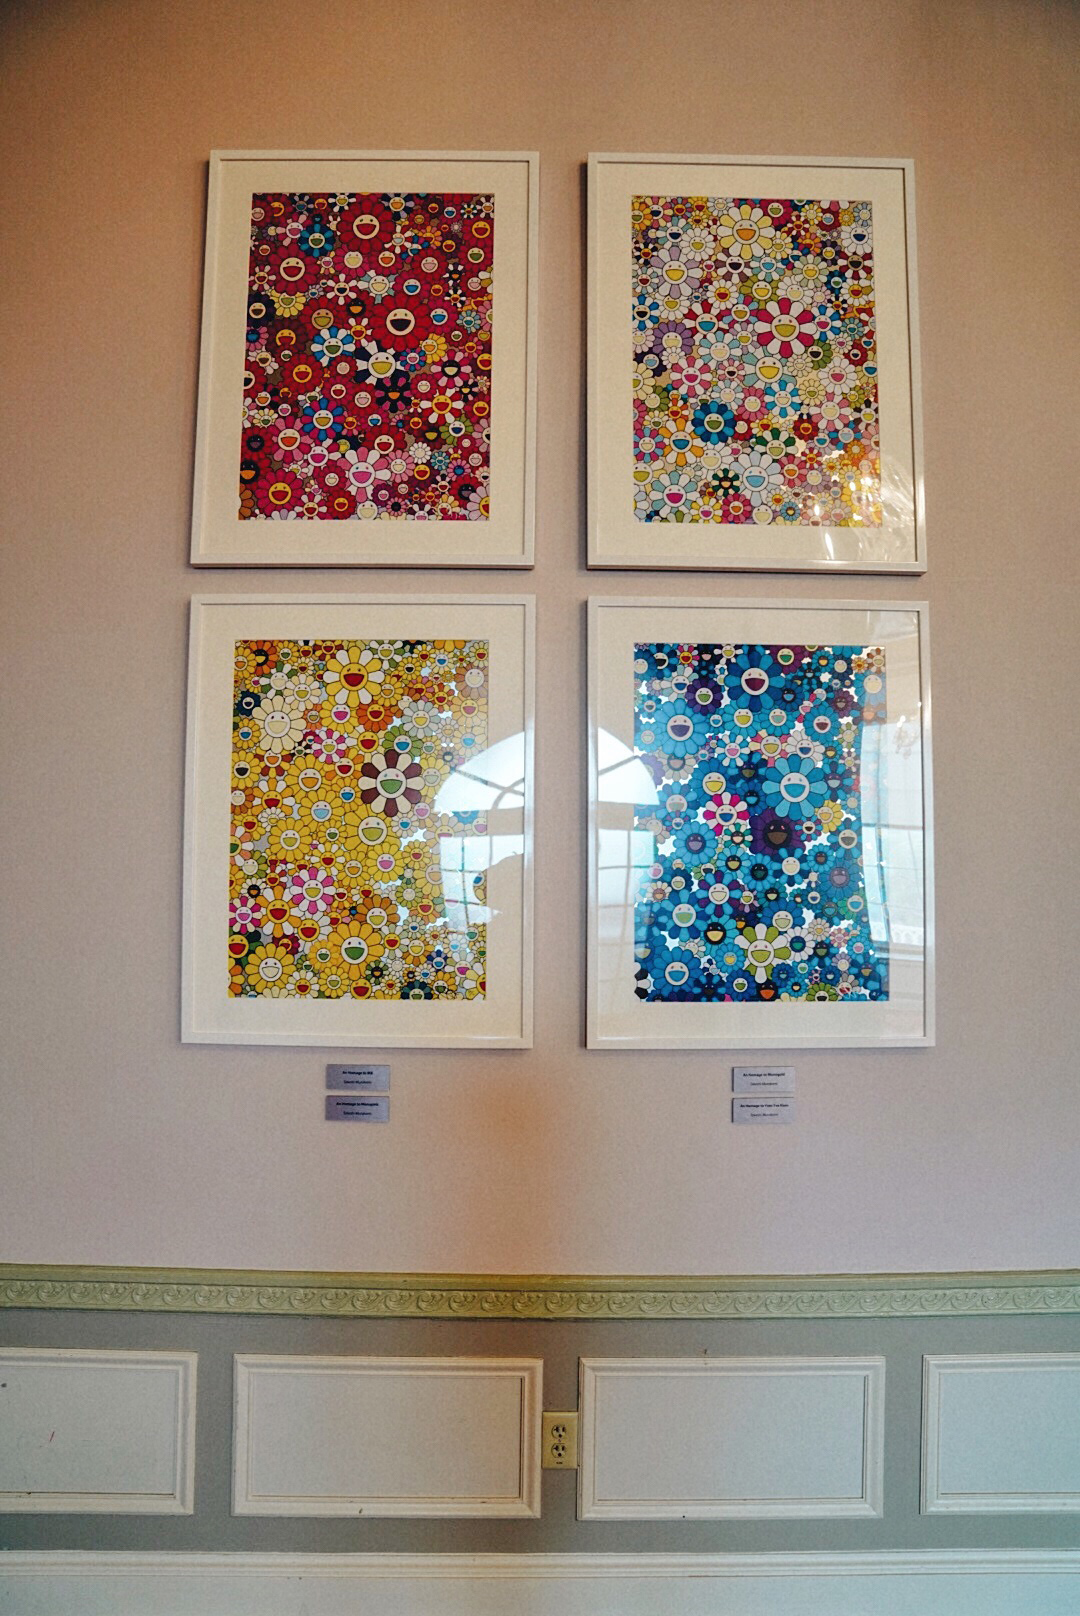 An Homage to Yves Klein Multicolor A (4 works total) by Takashi Murakami